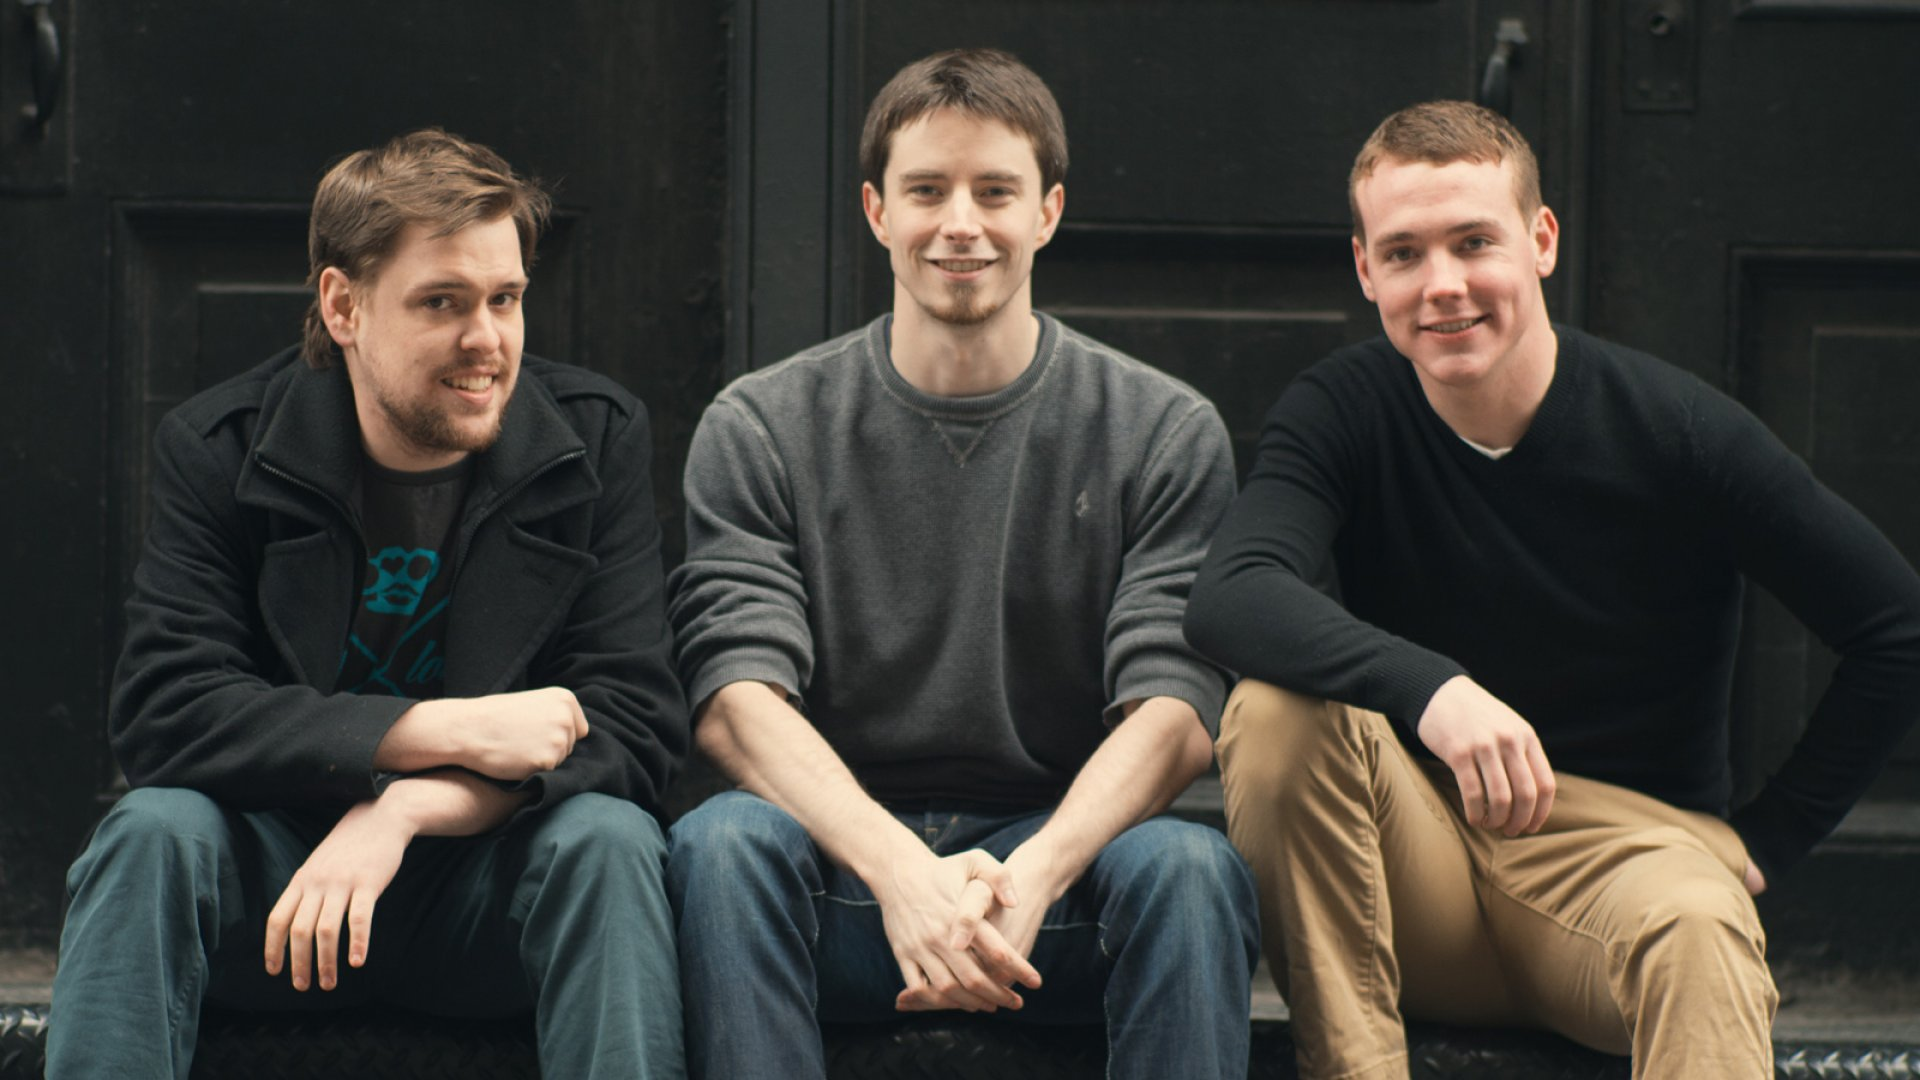 When Pete Kistler (center) went to get a job, he had some bad press from other people he needed to minimize. He, Evan Watson (left), and Patrick Ambron (right) launched BrandYourself to resolve such issues for others. <br> <br>